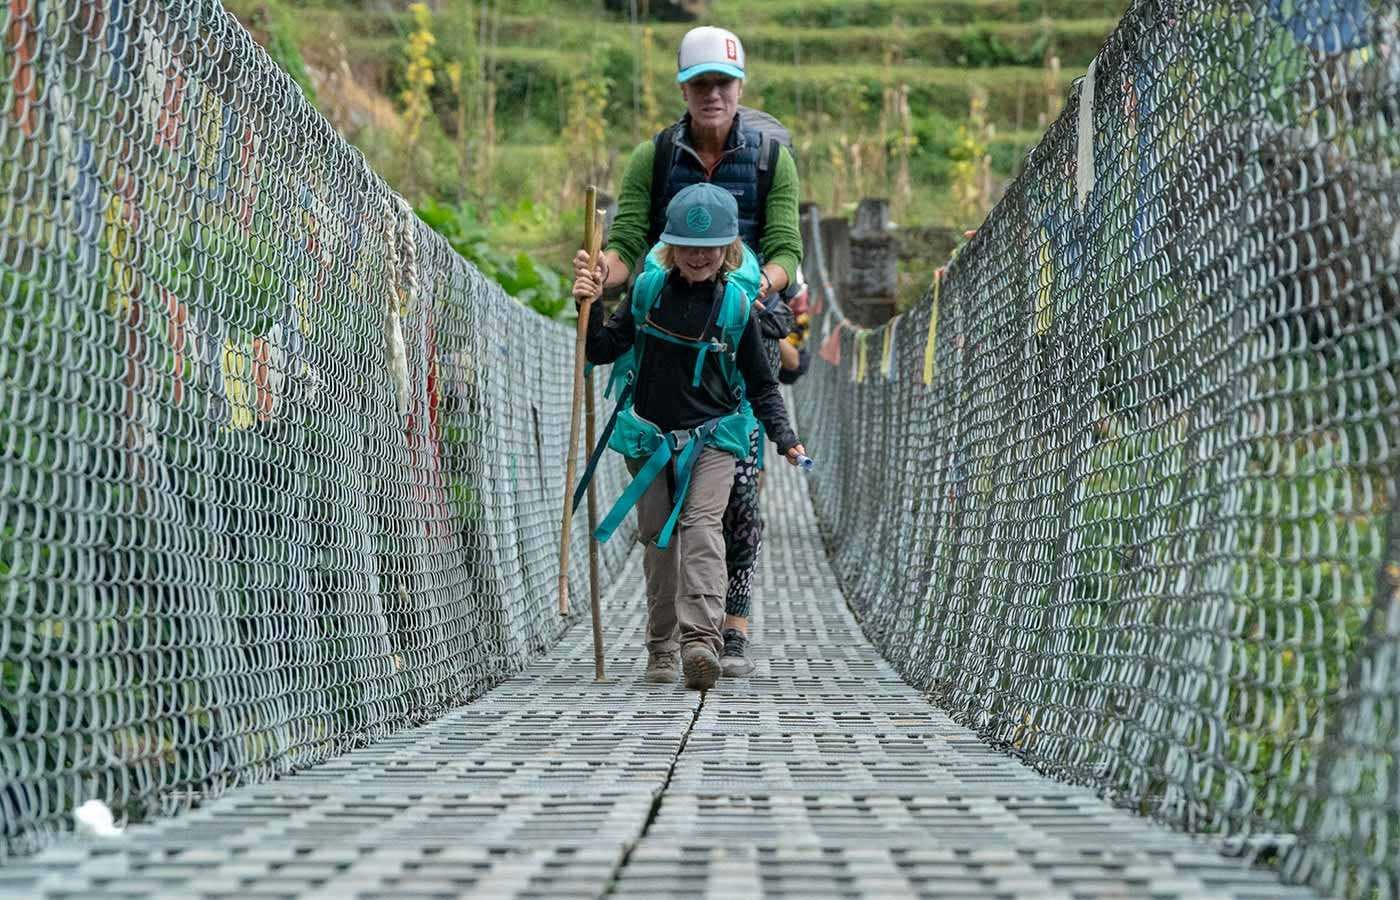 Mom and son crossing bridge in Nepal